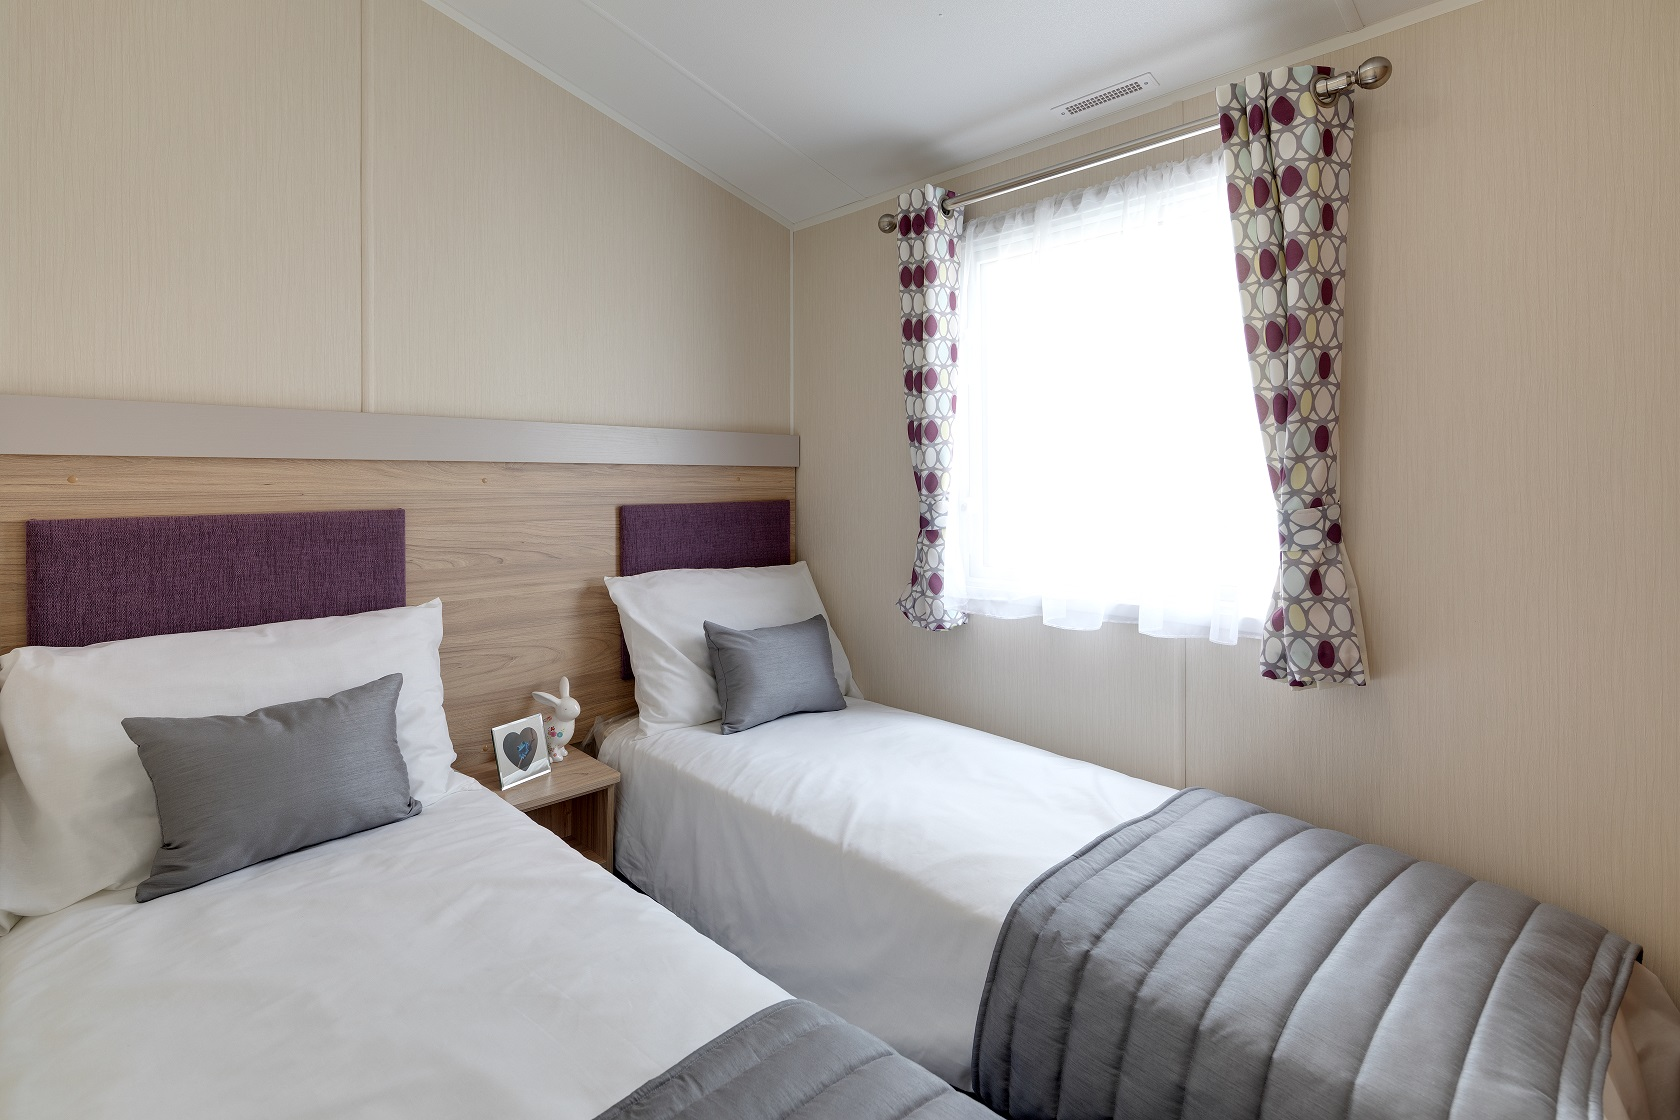 Willerby Linwood: New Static Caravans and Holiday Homes for Sale, Clifton, Morpeth Large Image 4